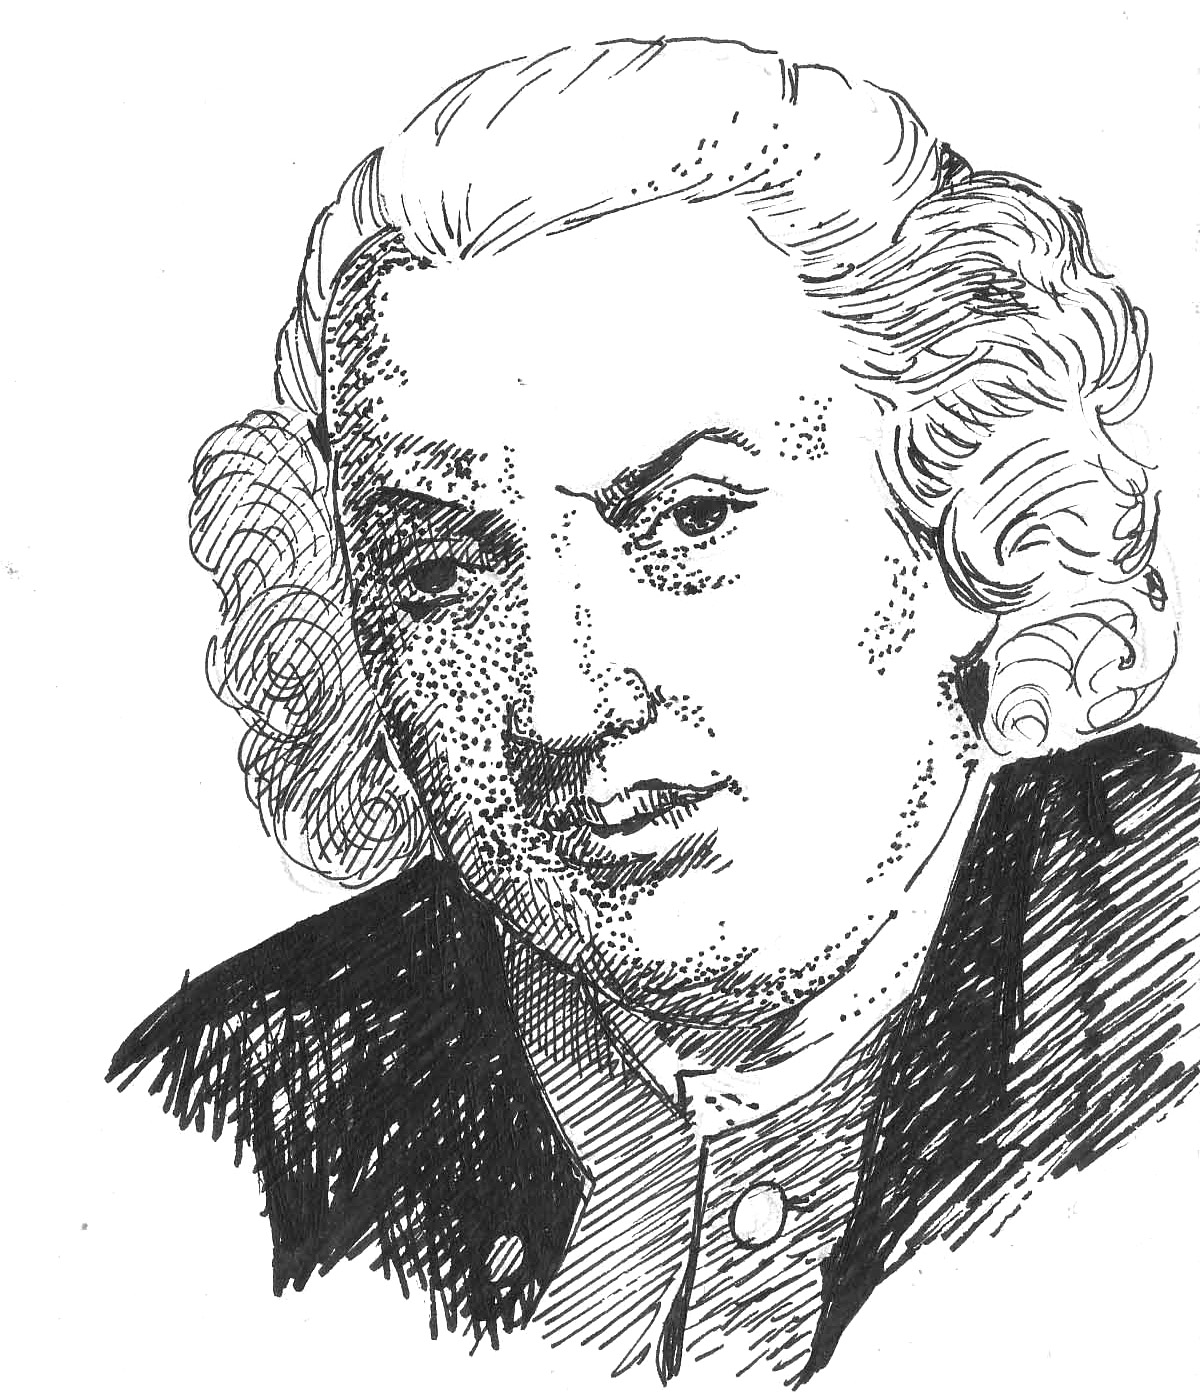 samuel johnson essays Samuel johnson was born in 1709, in lichfield, england the son of a bookseller, johnson briefly attended pembroke college, oxford, taught school, worked for a printer, and opened a boarding academy with his wife's money before that failed.